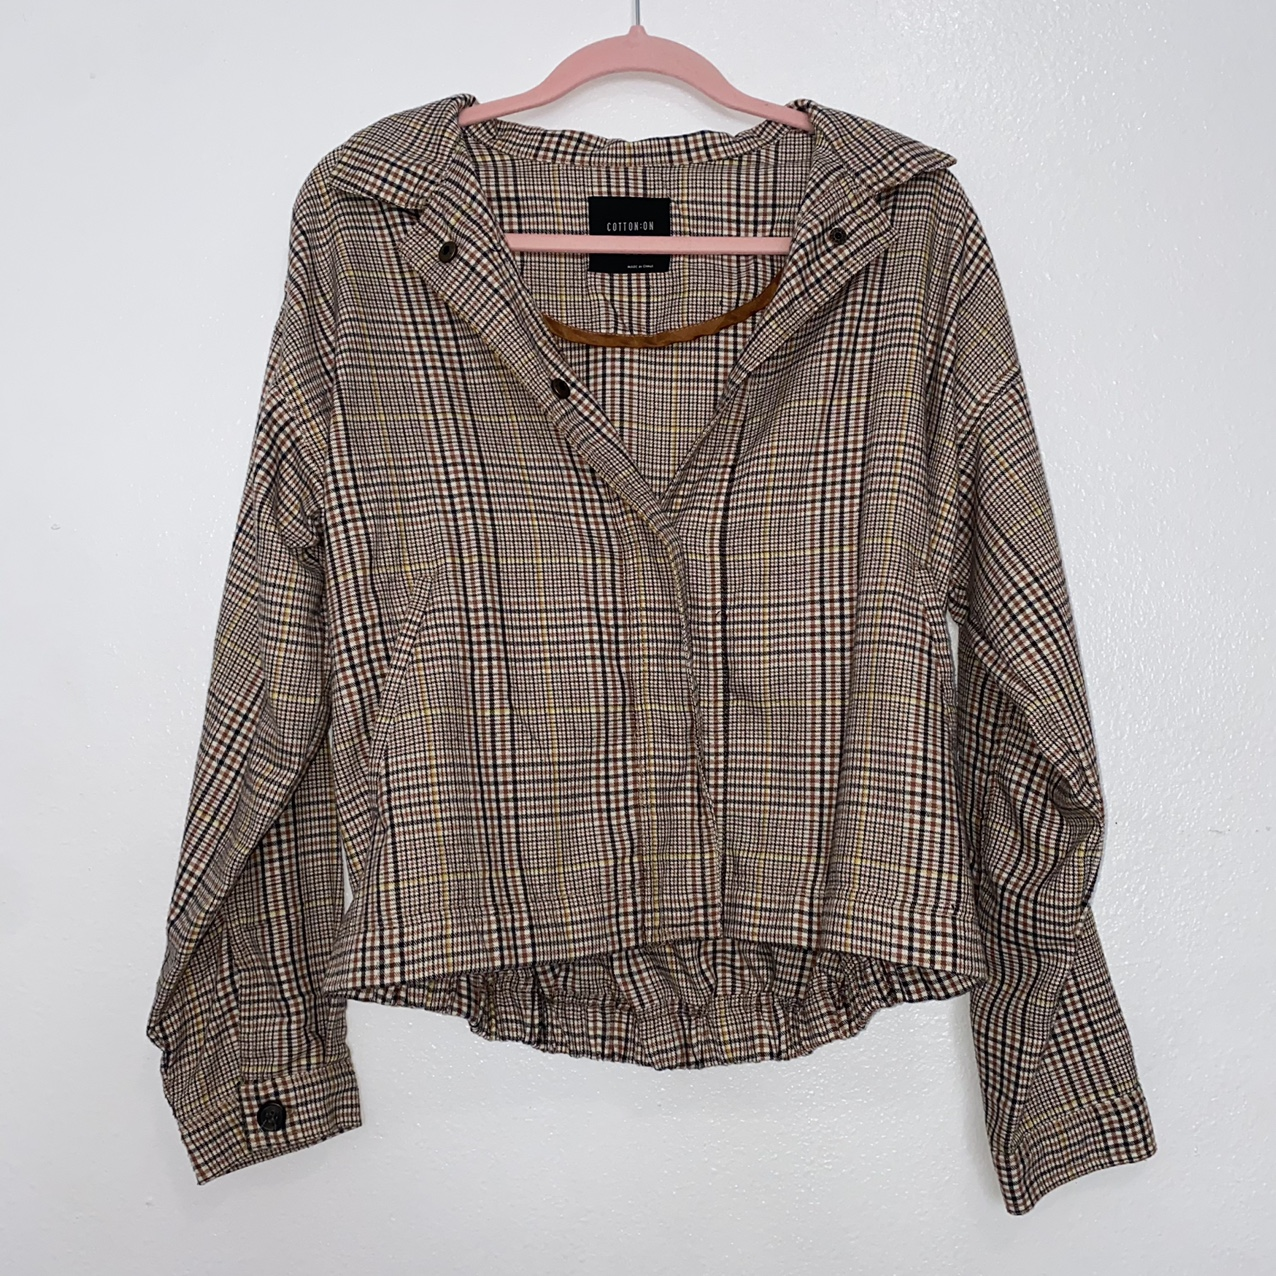 Product Image 1 - cotton on flannel jacket with